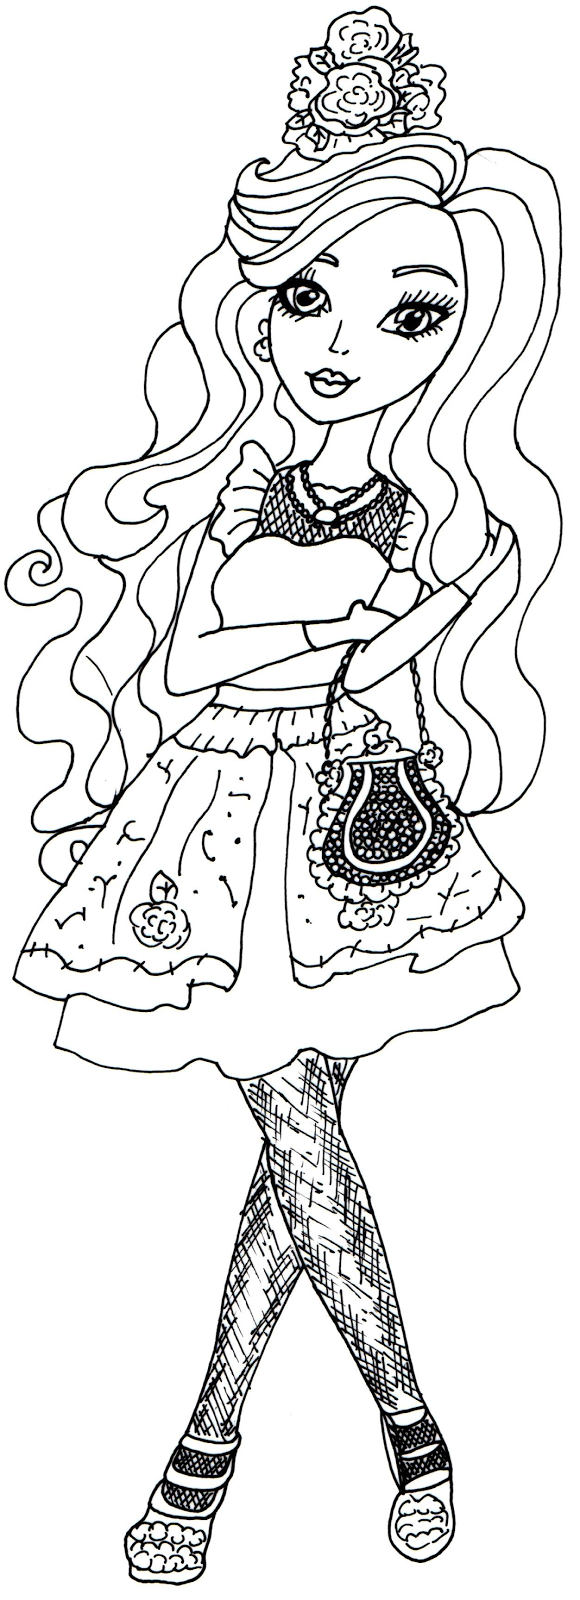 Free Printable Ever After High Coloring Pages: Briar